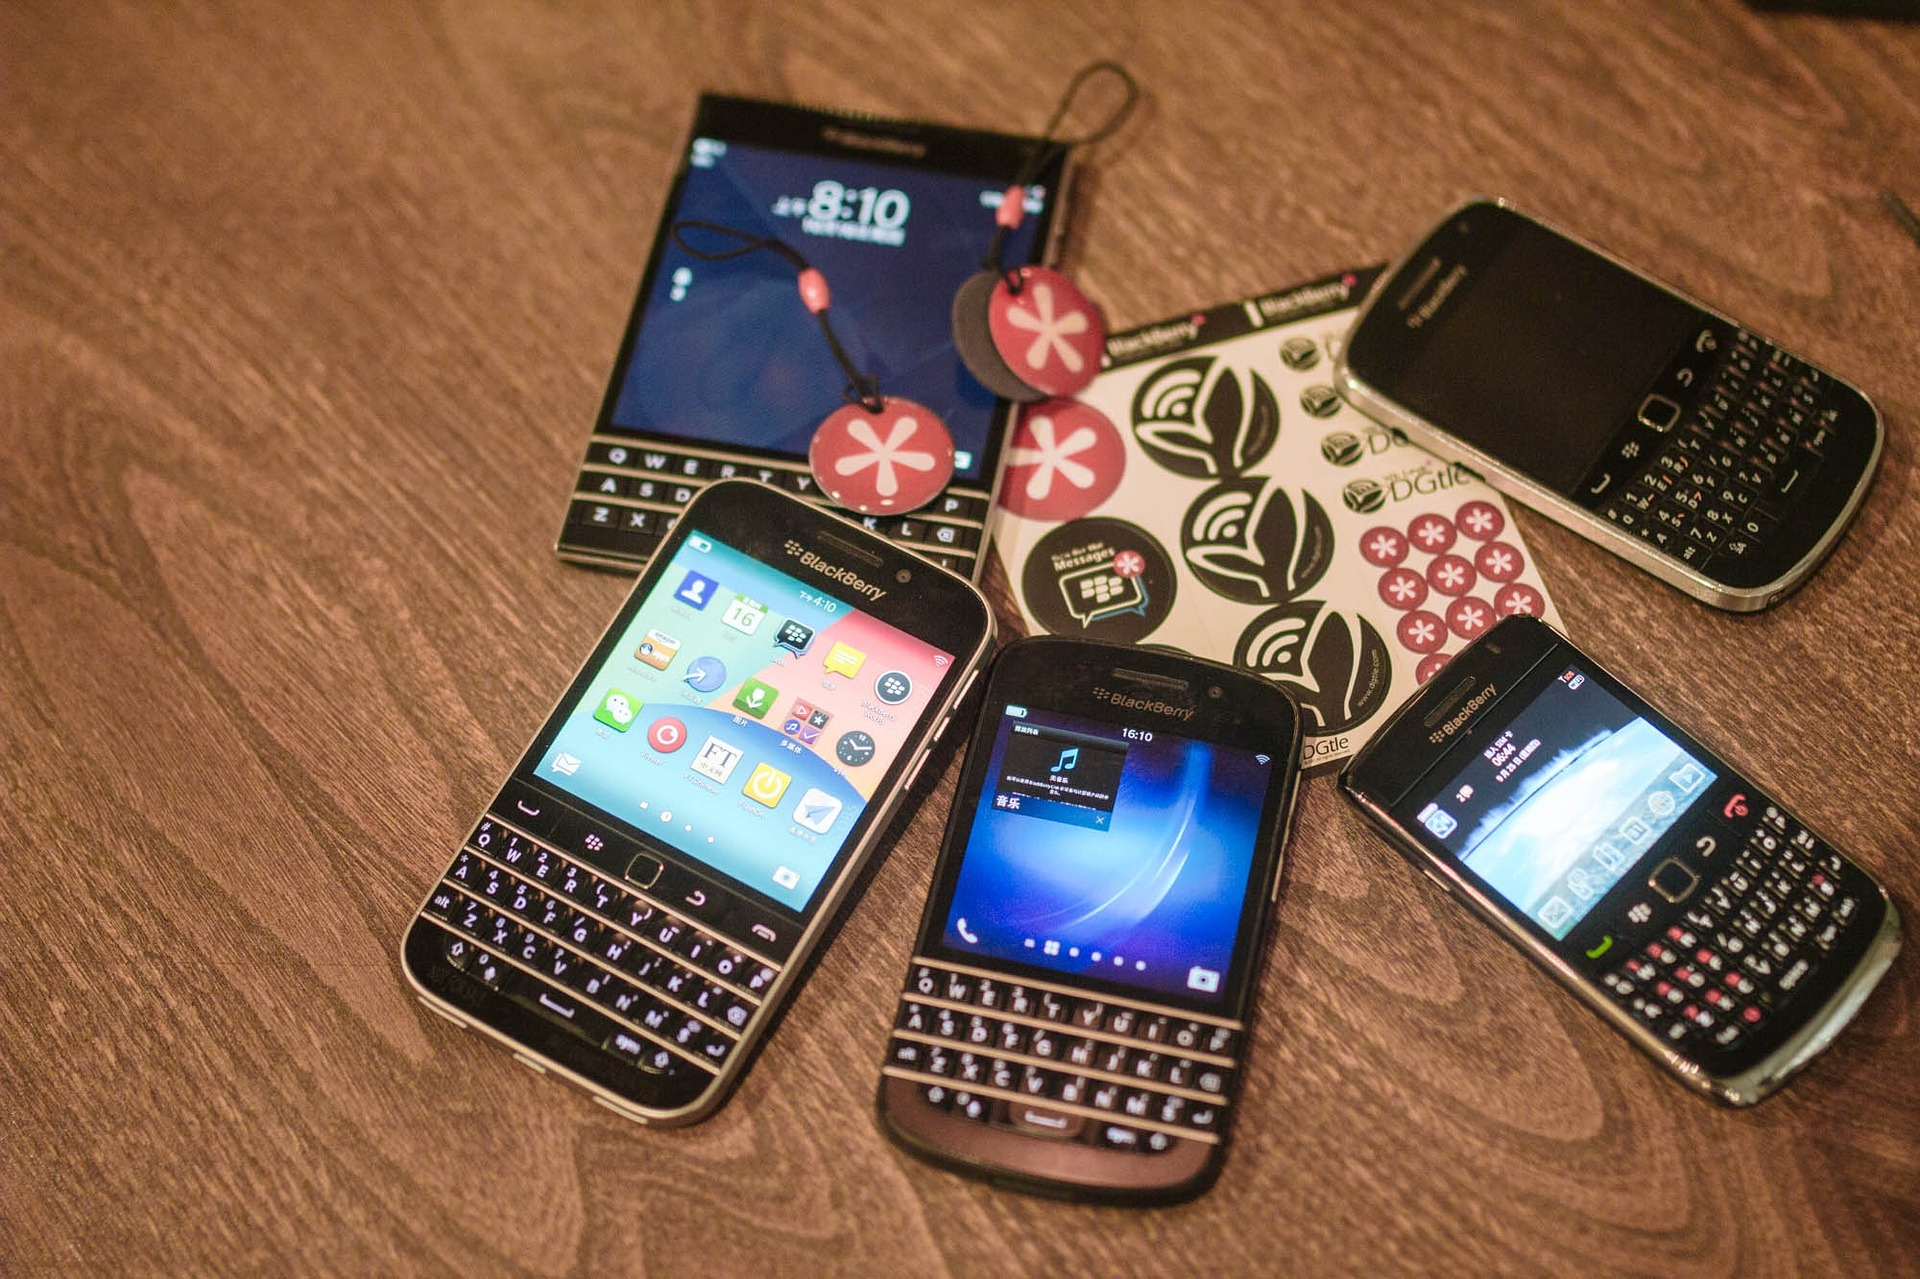 BlackBerry sues Twitter for patent infringement